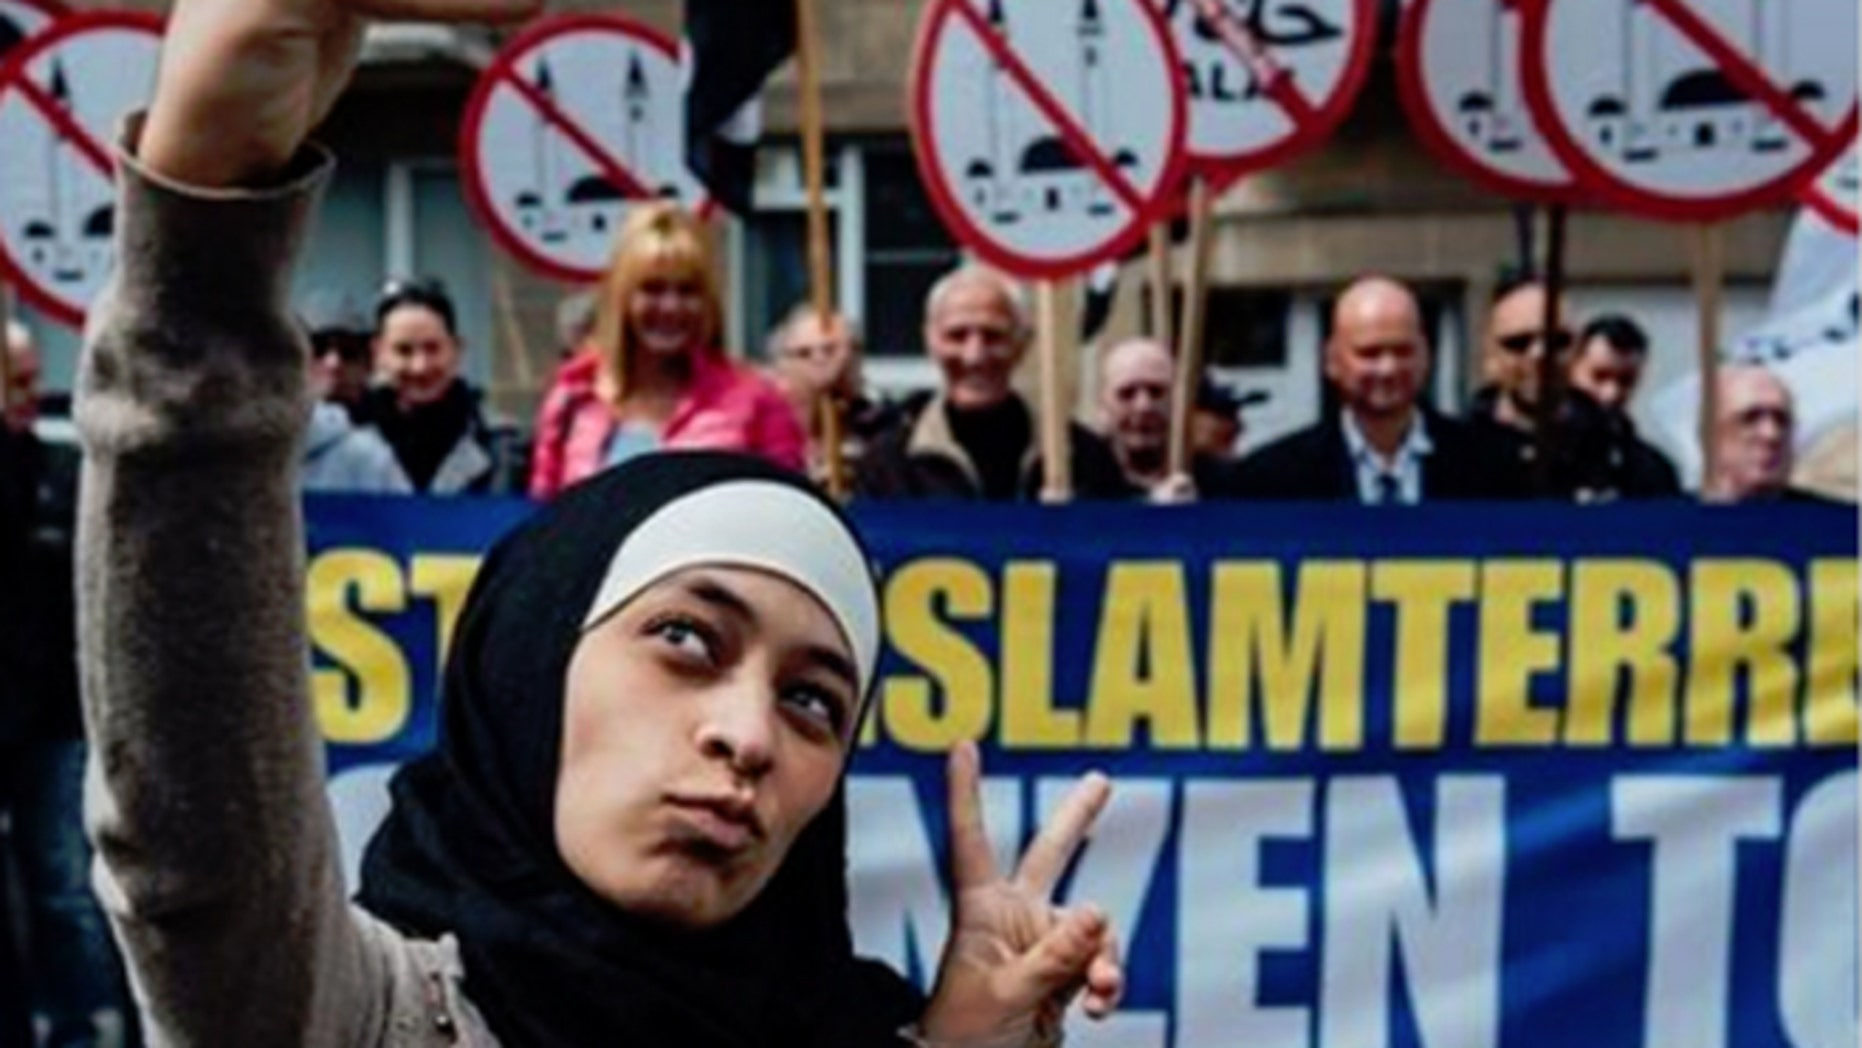 Pictures of her taking a peace sign selfie in front of protesters made Zakia Belkhiri a media darling - briefly.